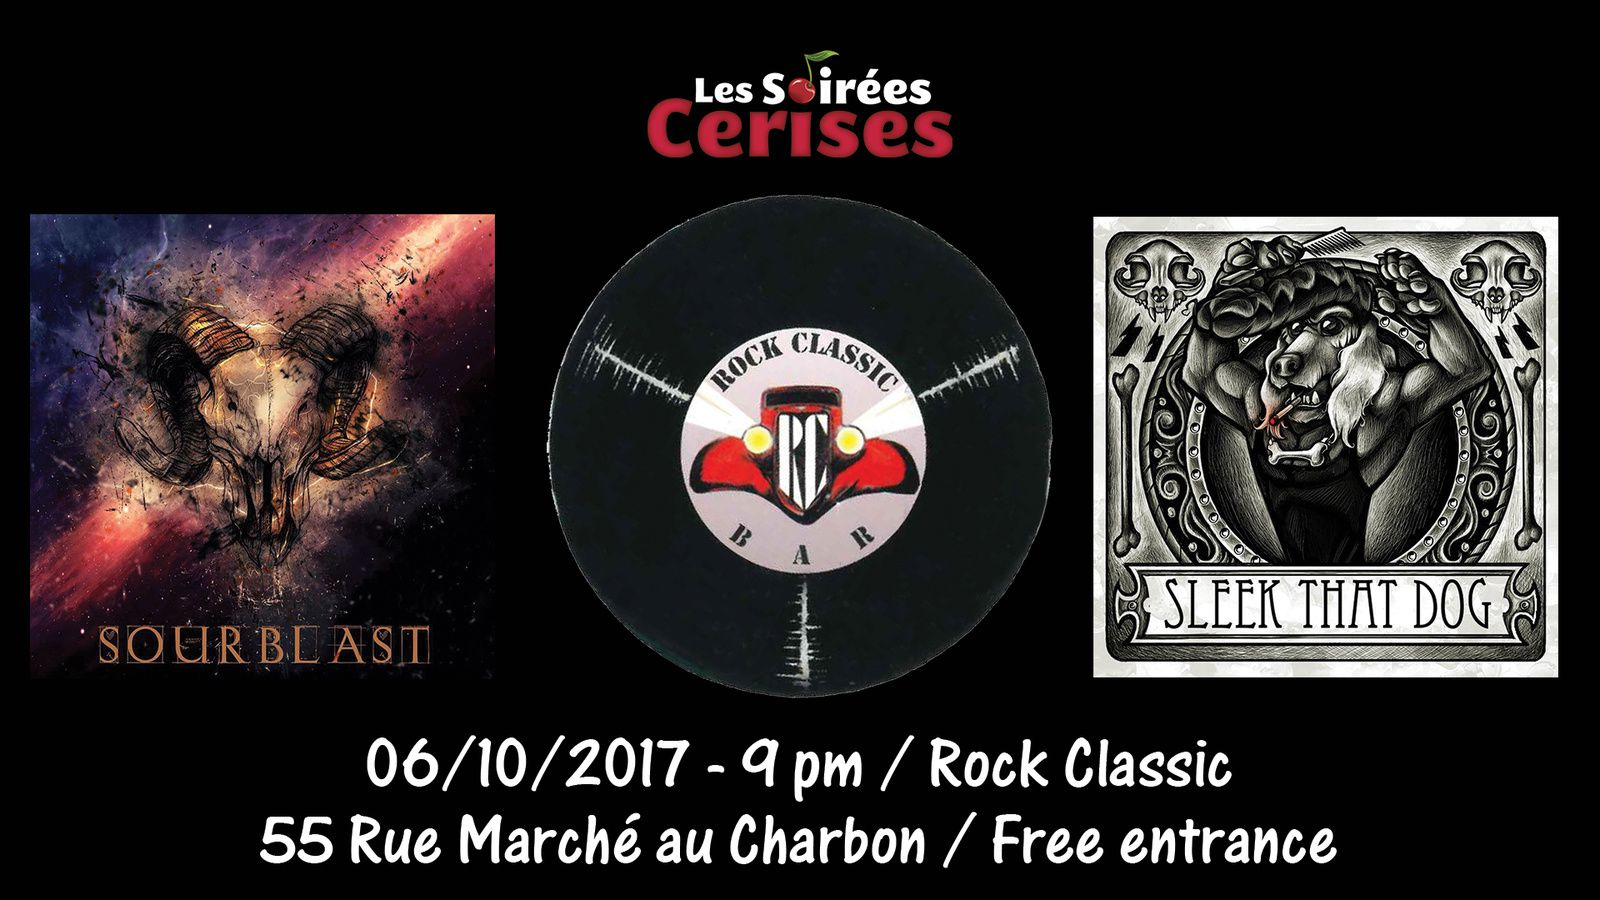 ▶ Sourblast + Sleek that dog @ Rock Classic - 06/10/2017 - 21h00 - Entrée gratuite !